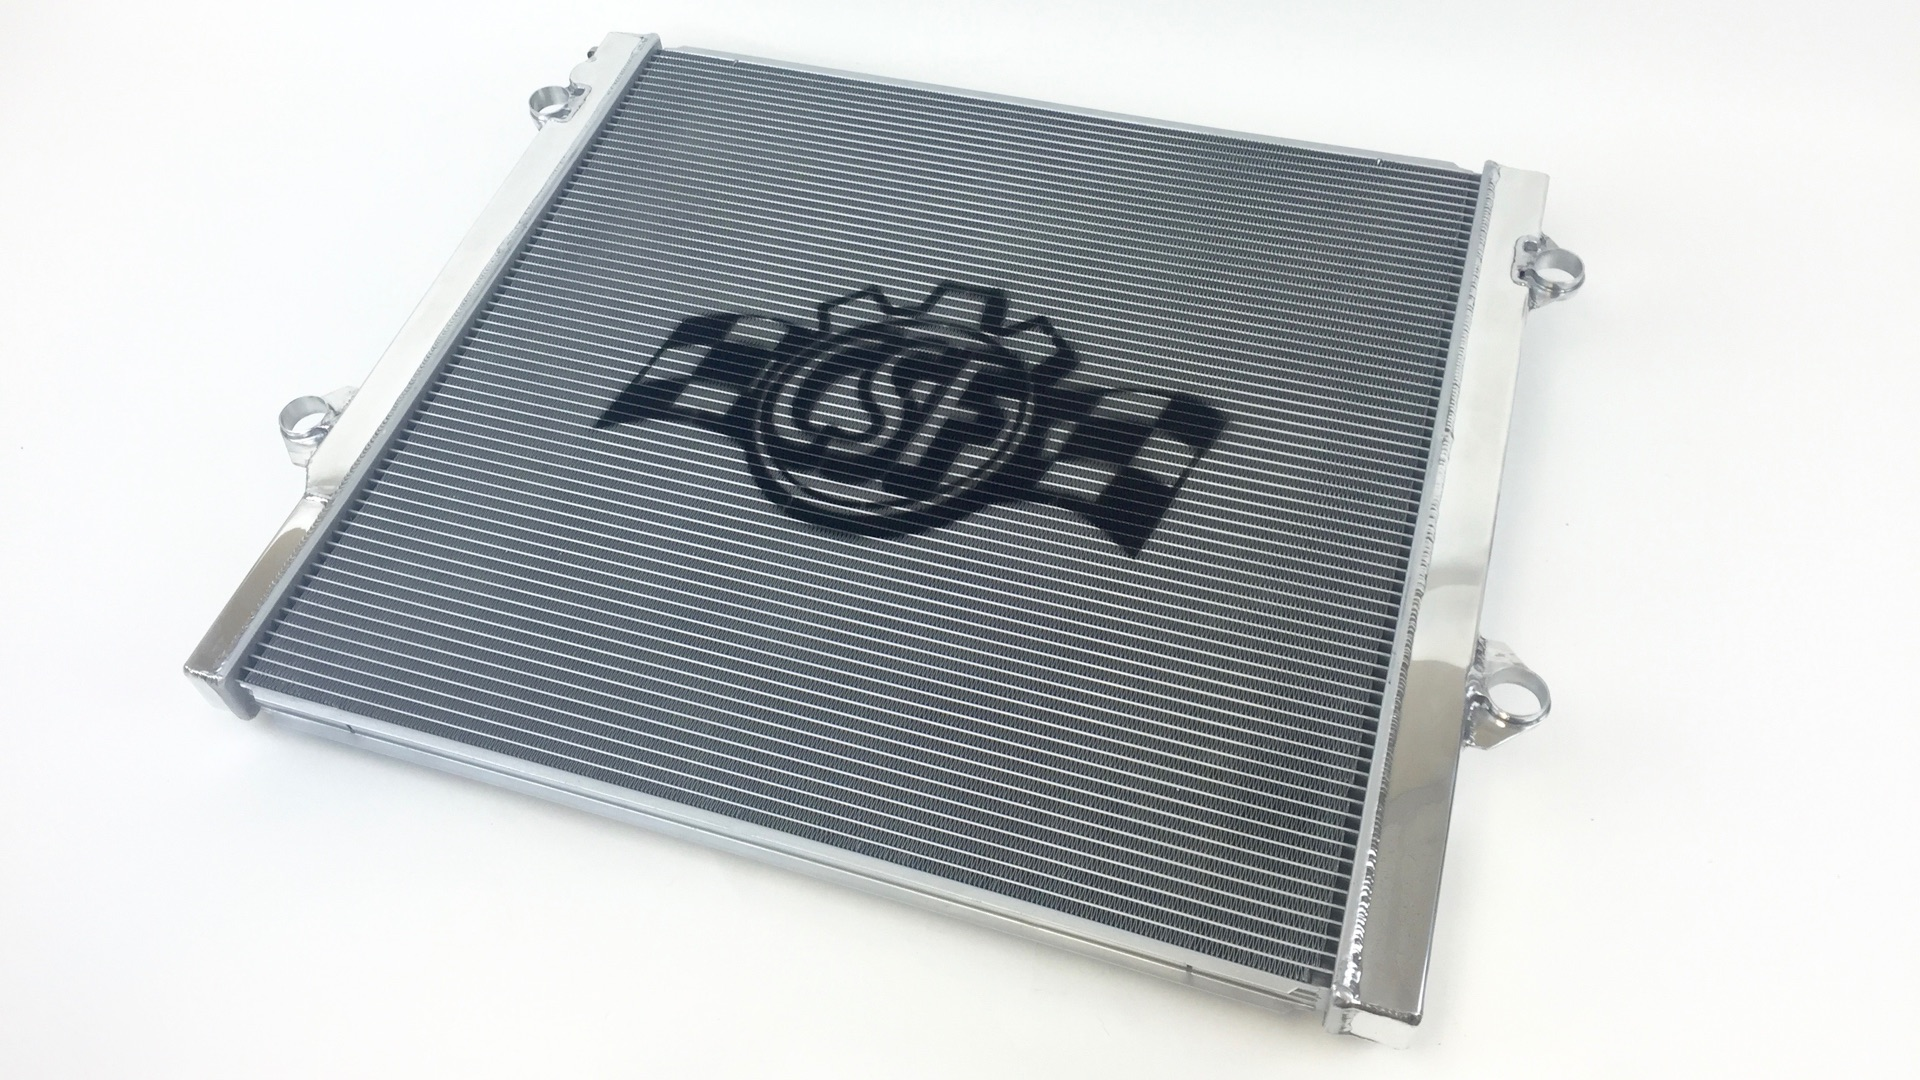 CSF High Performance Radiator for 2ND Gen Tacoma